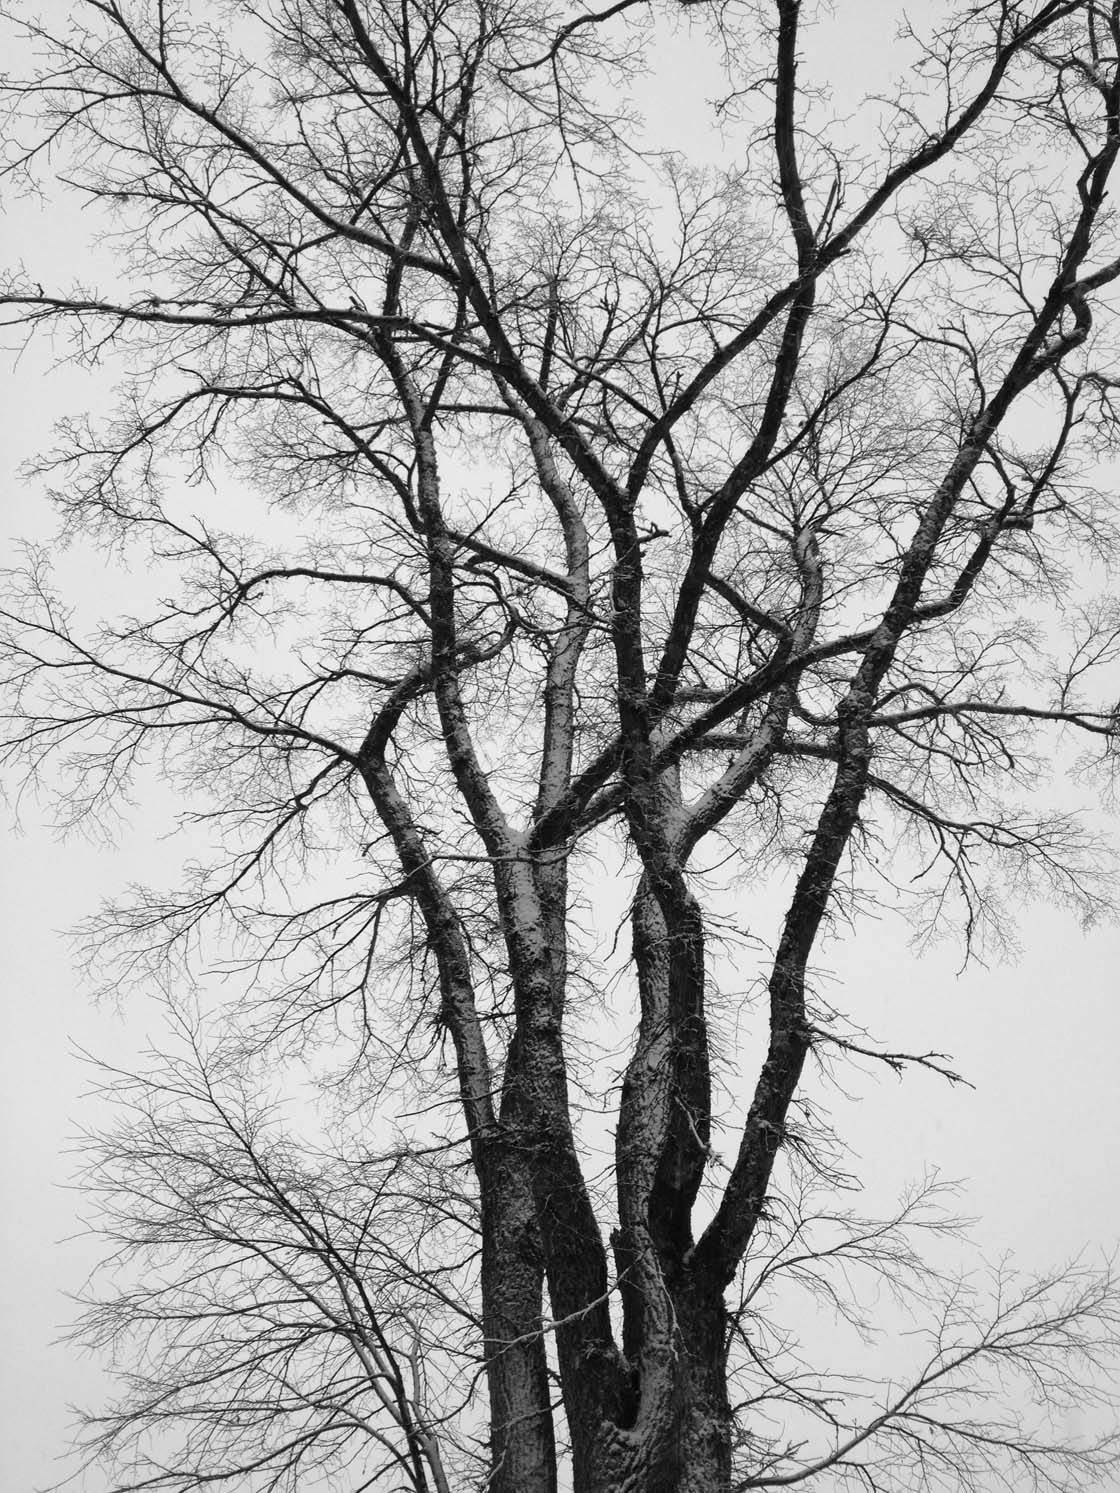 Winter Tree iPhone Photos 31 no script